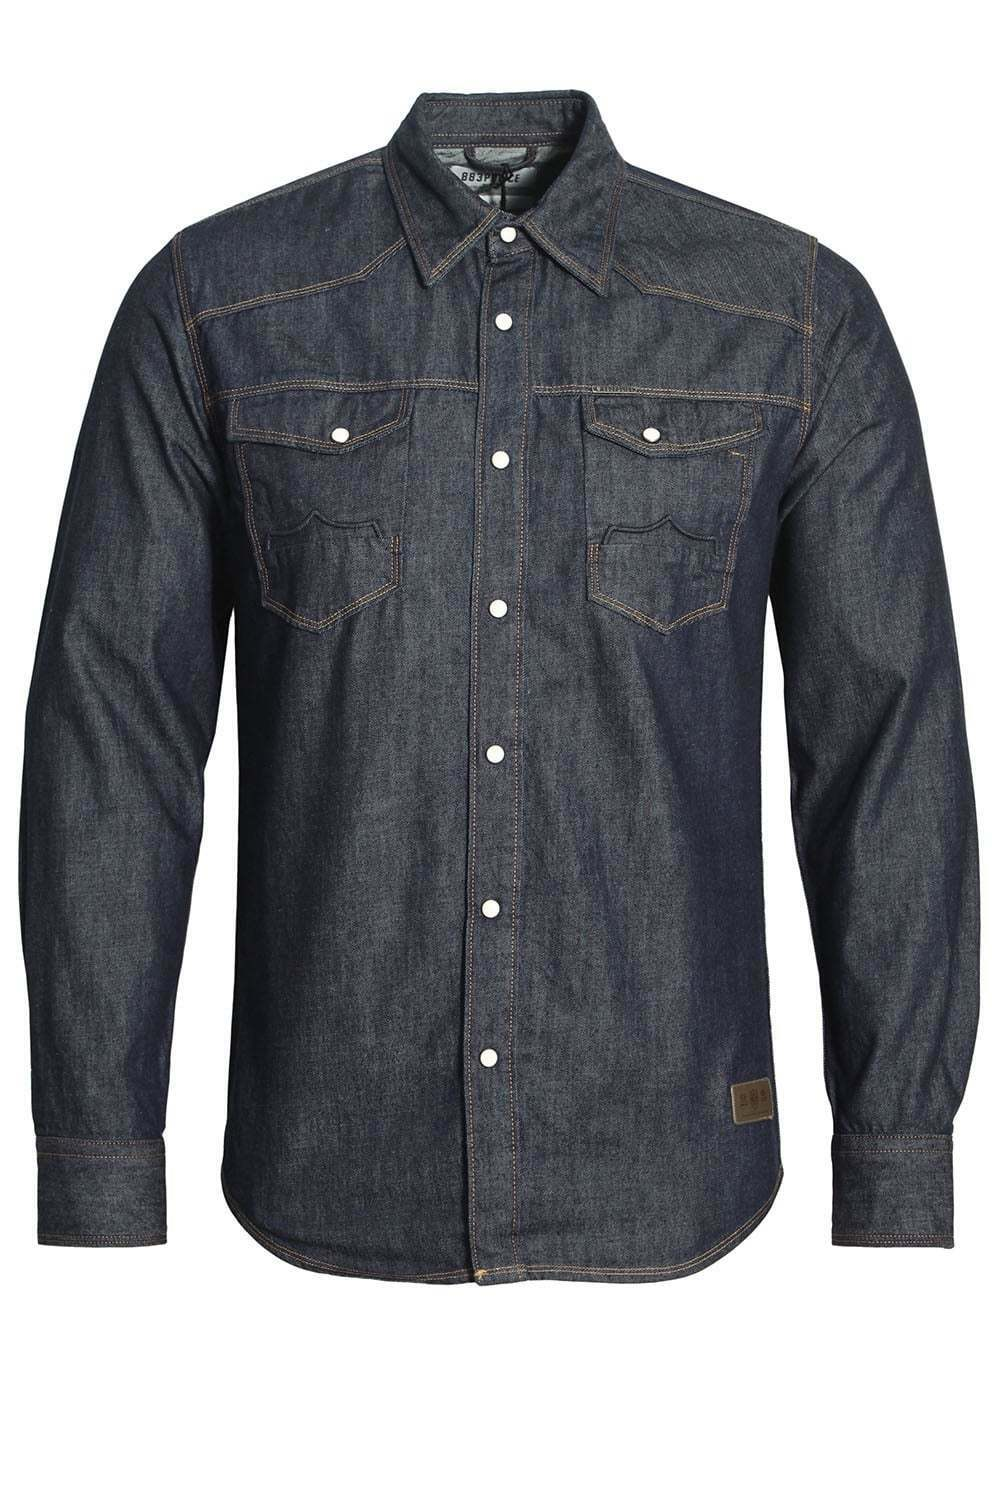 883 POLICE Bronco Long Sleeve Denim Shirt   Dark Wash